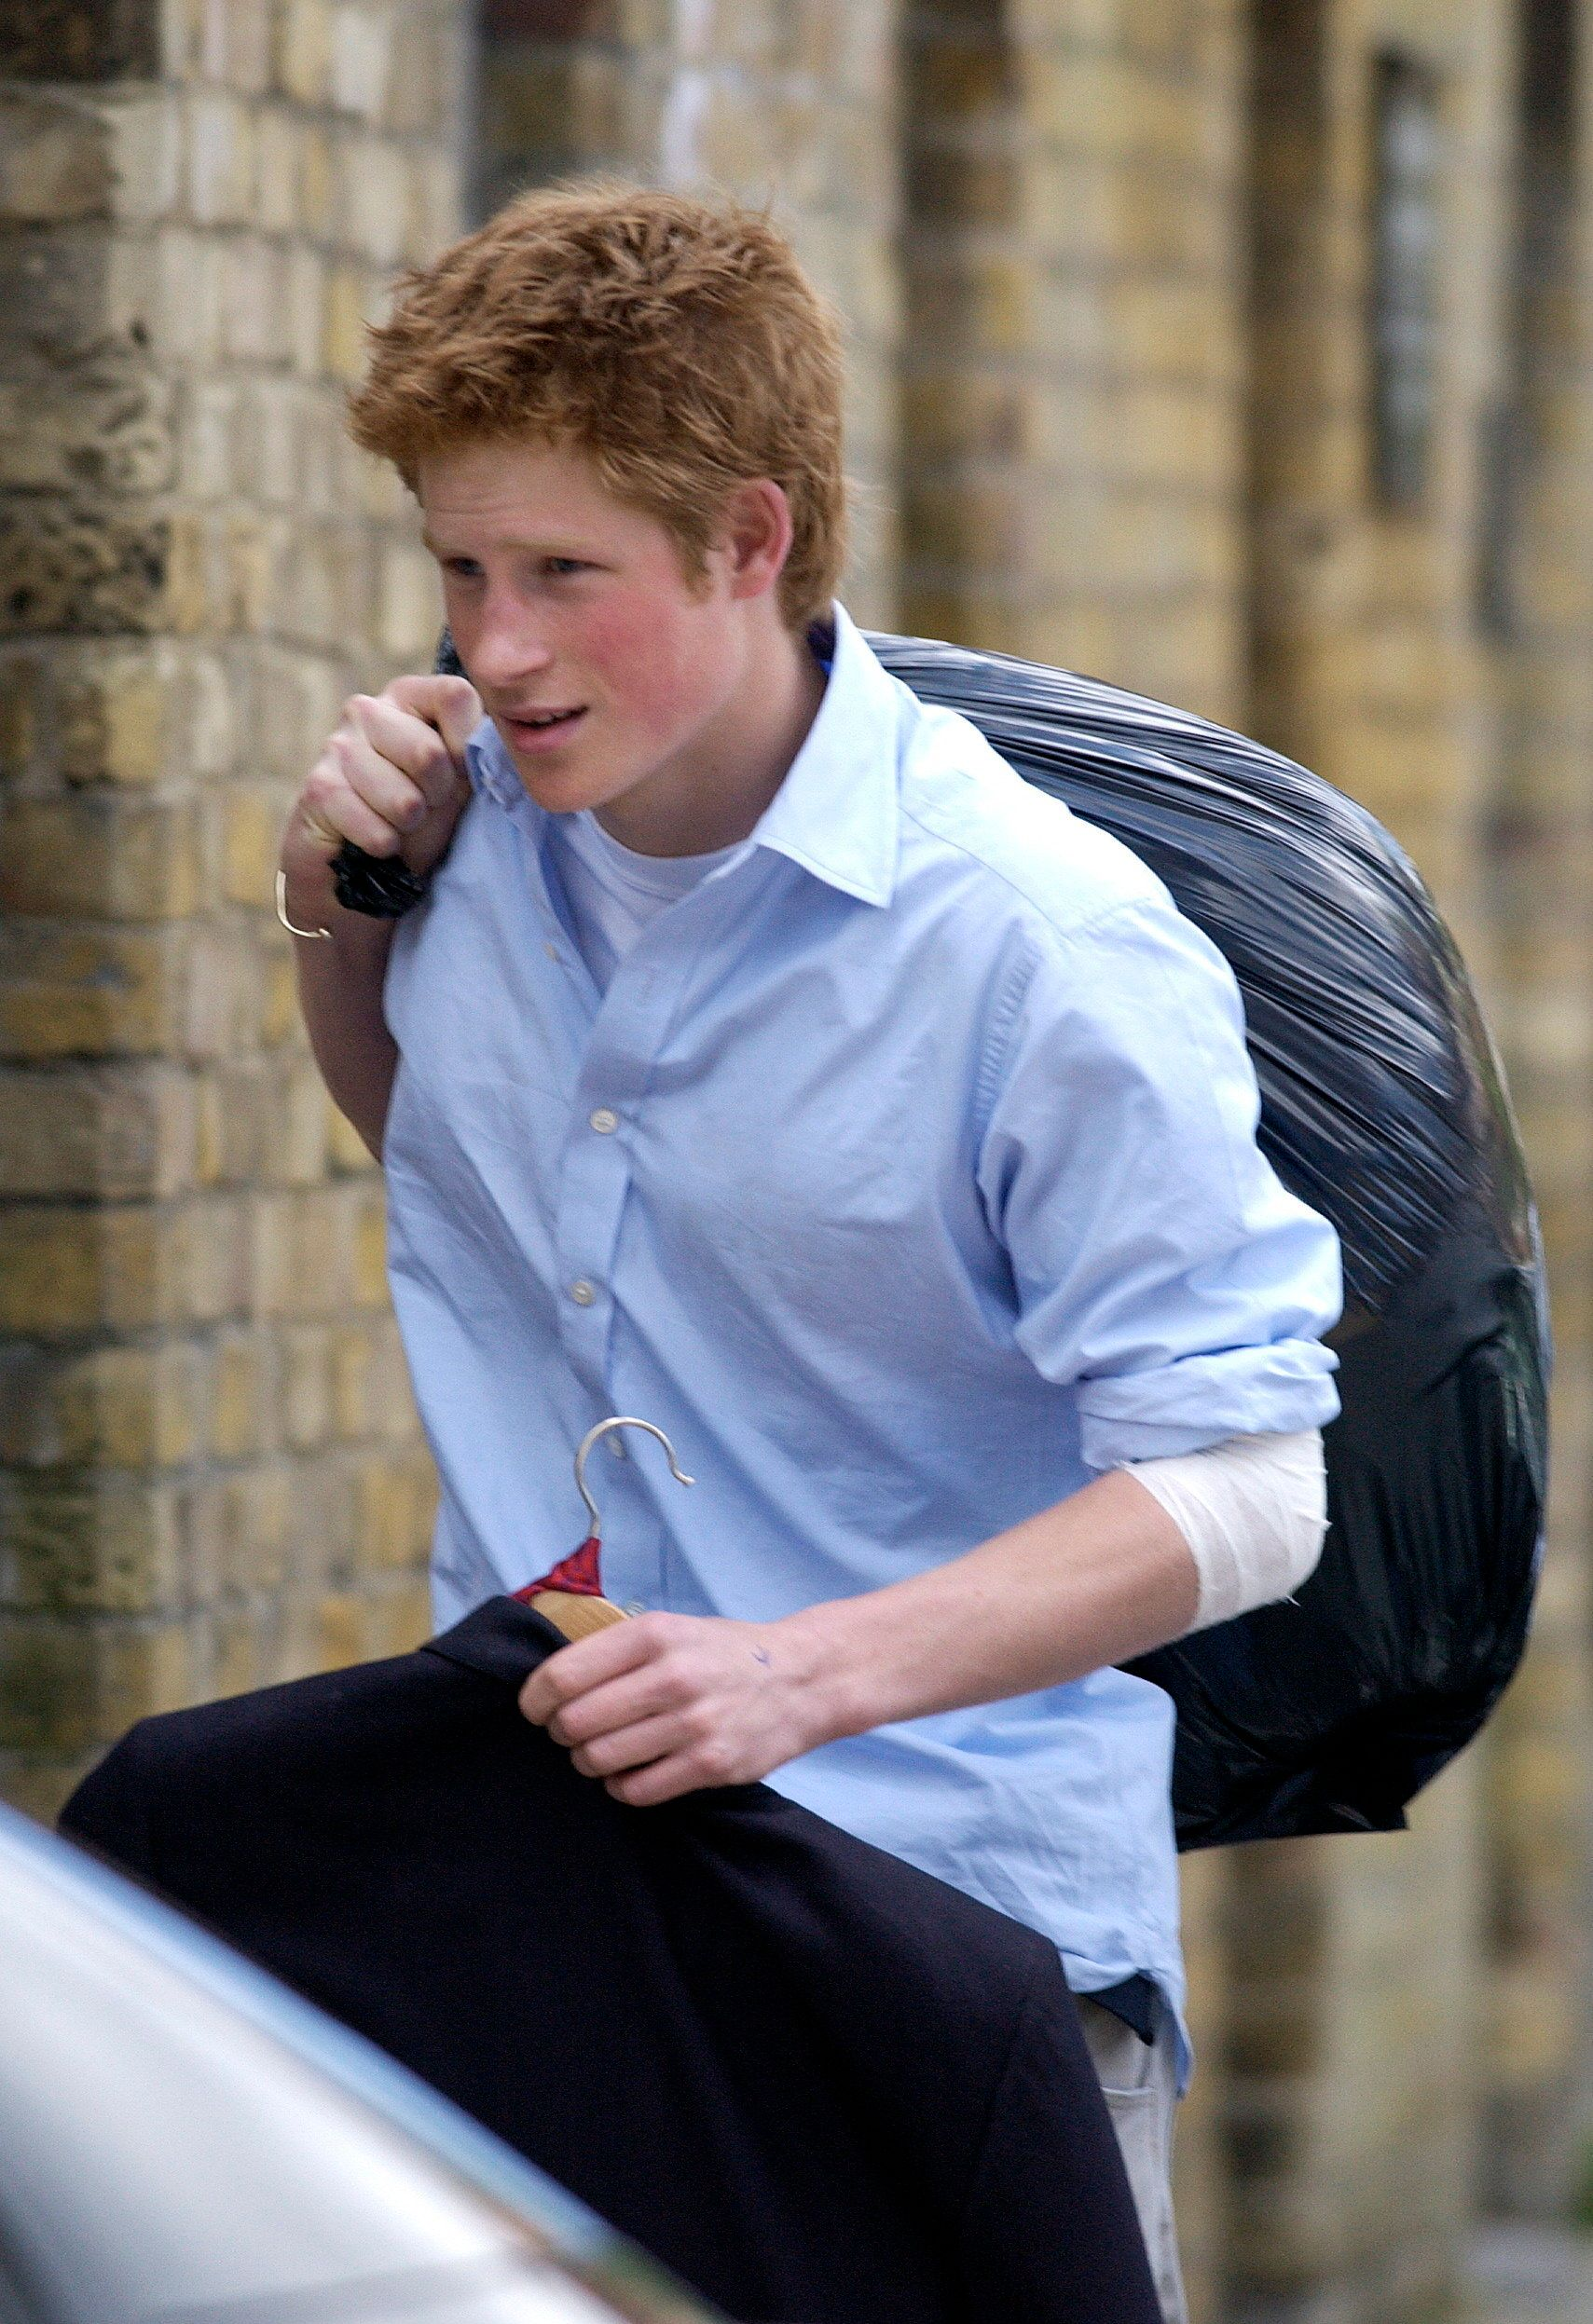 Prince Harry carrying his belongings in a black trash bag on his last day of school at Eton.